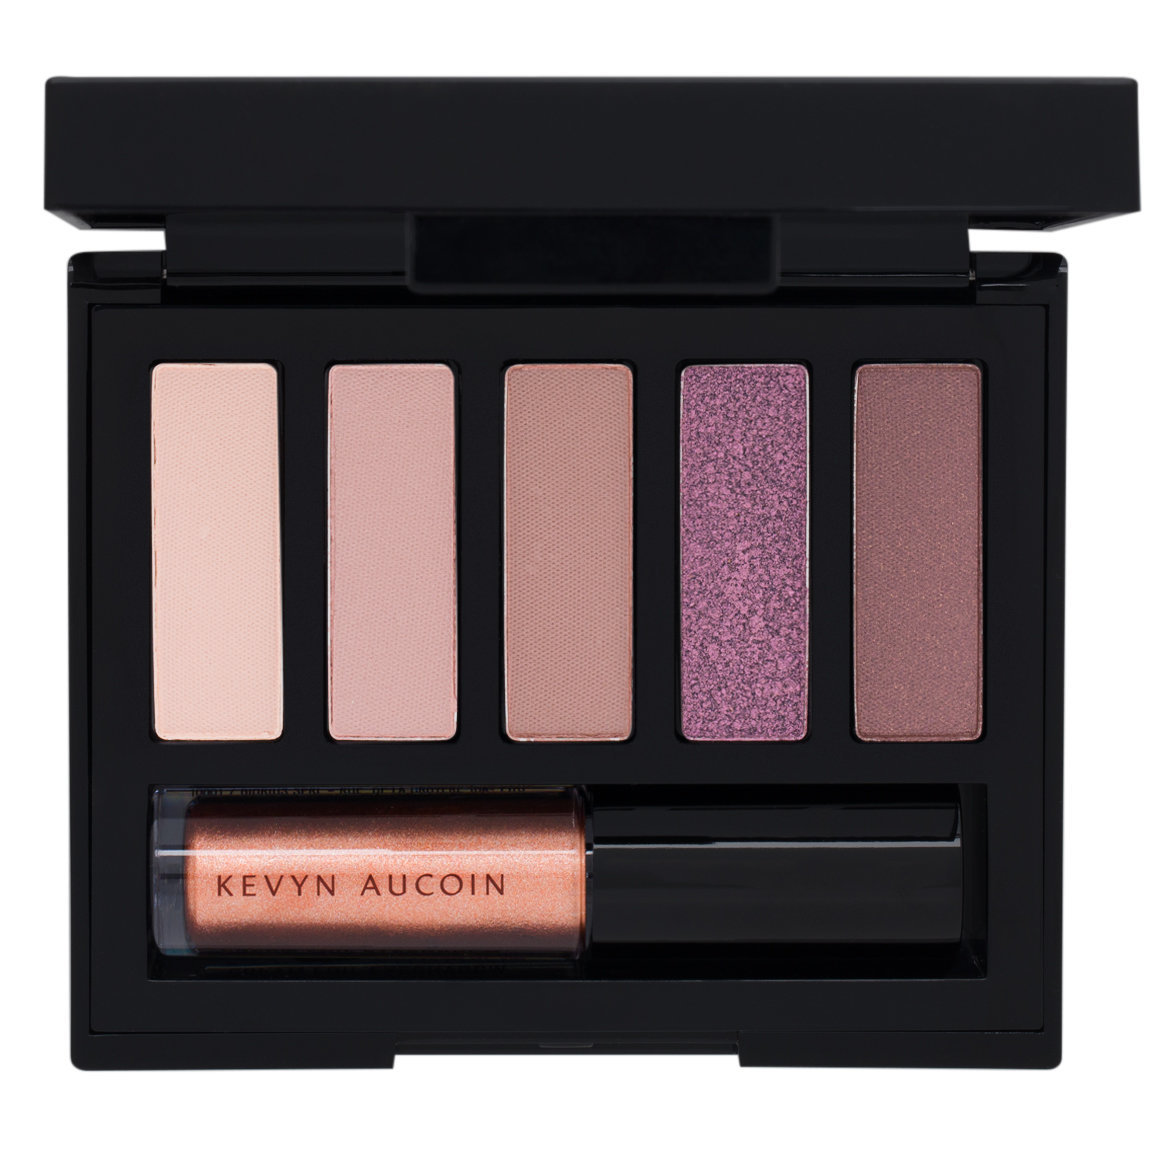 Kevyn Aucoin Emphasize Eye Design Palettes As Seen In product swatch.